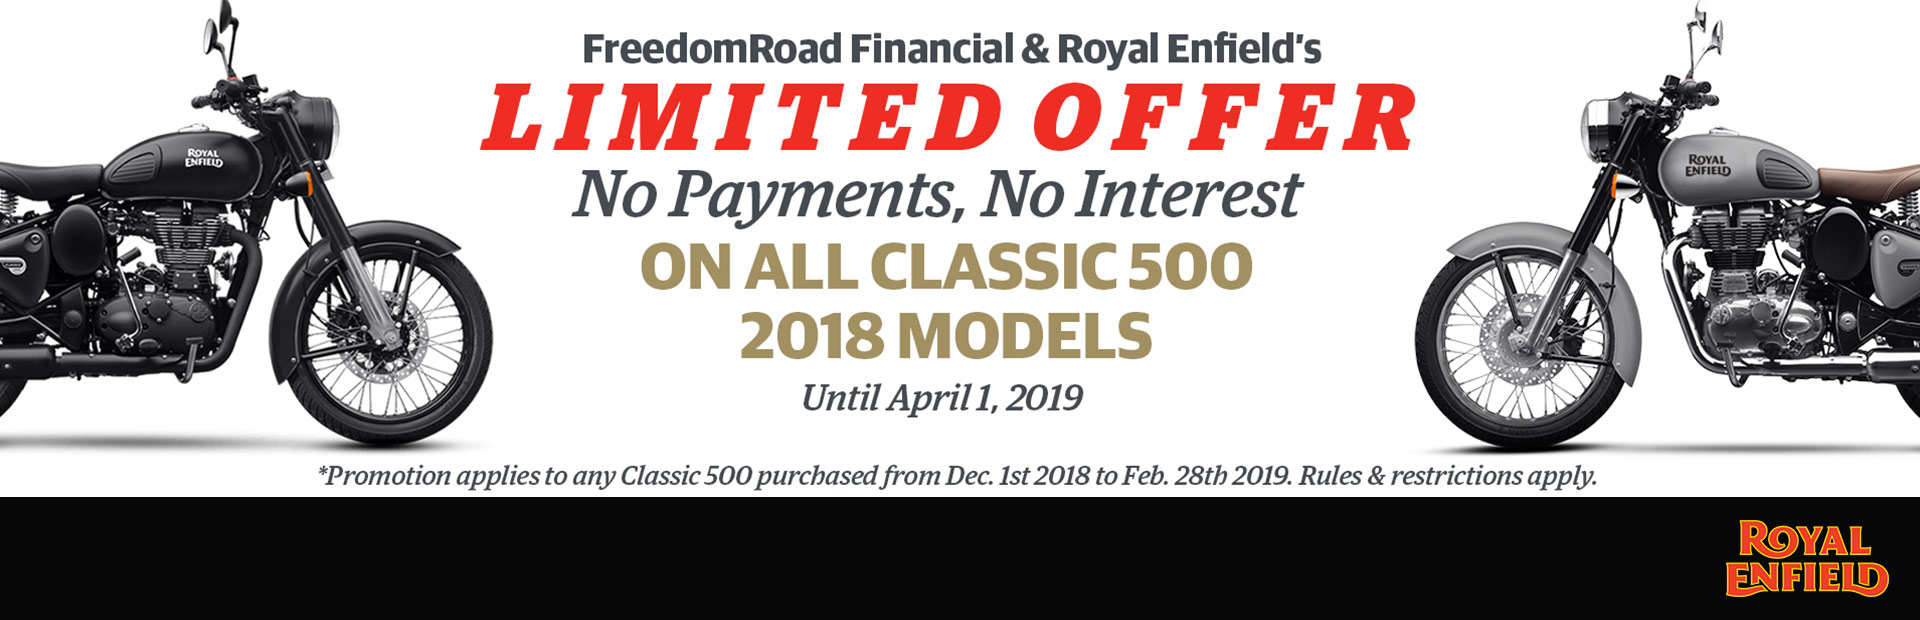 Royal Enfield: FreedomRoad Financial